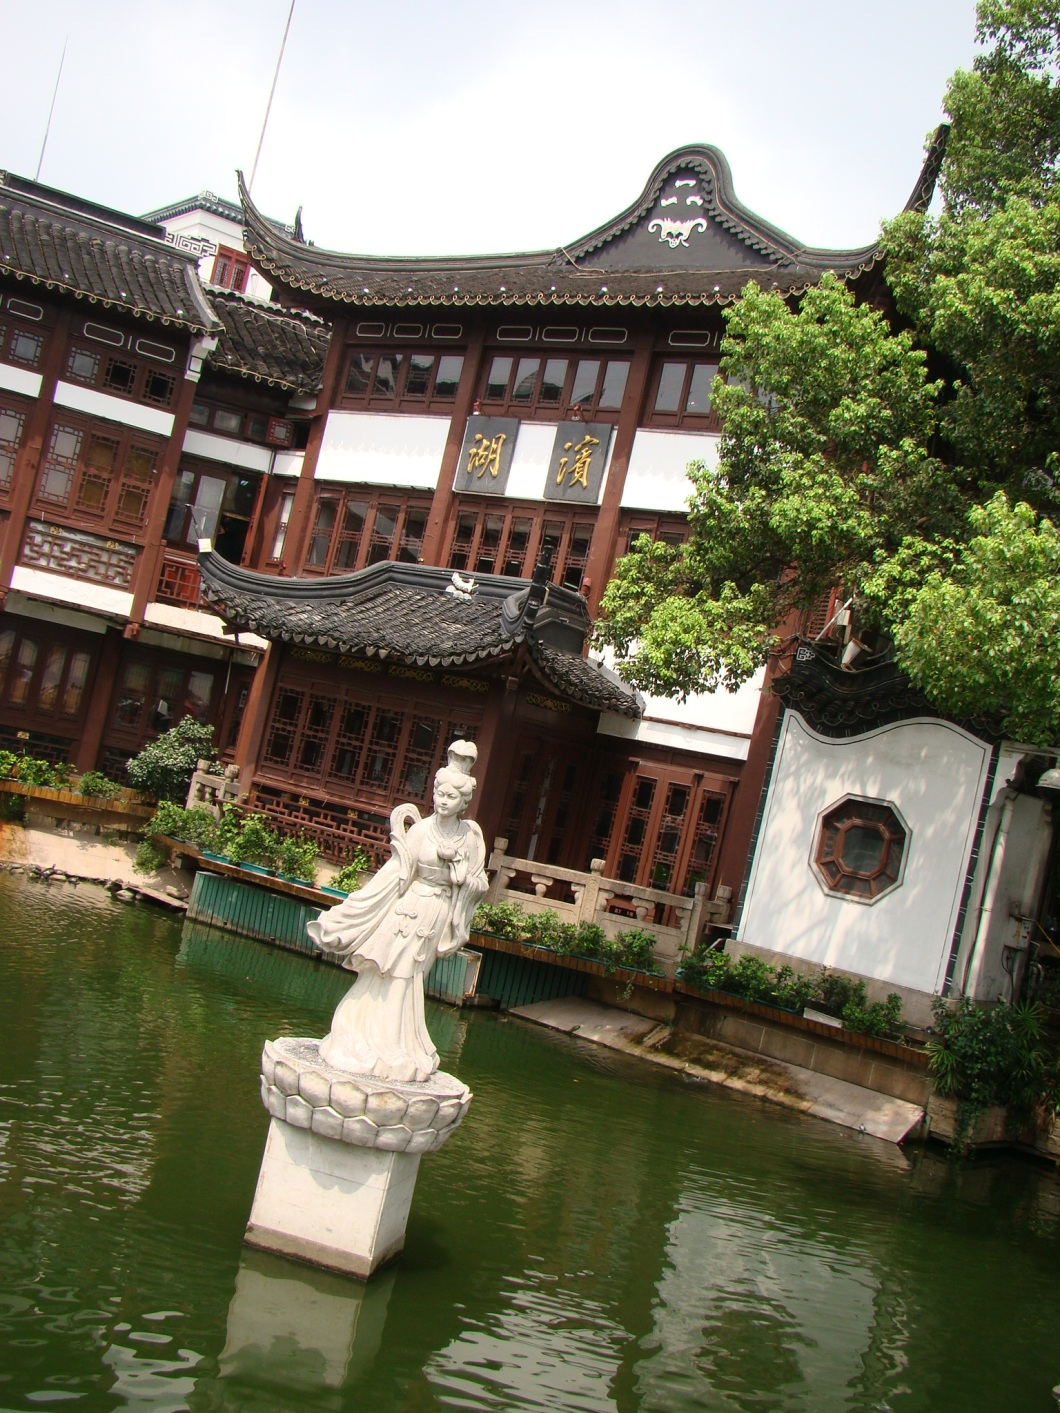 The Teahouse is surrounded by a small lake